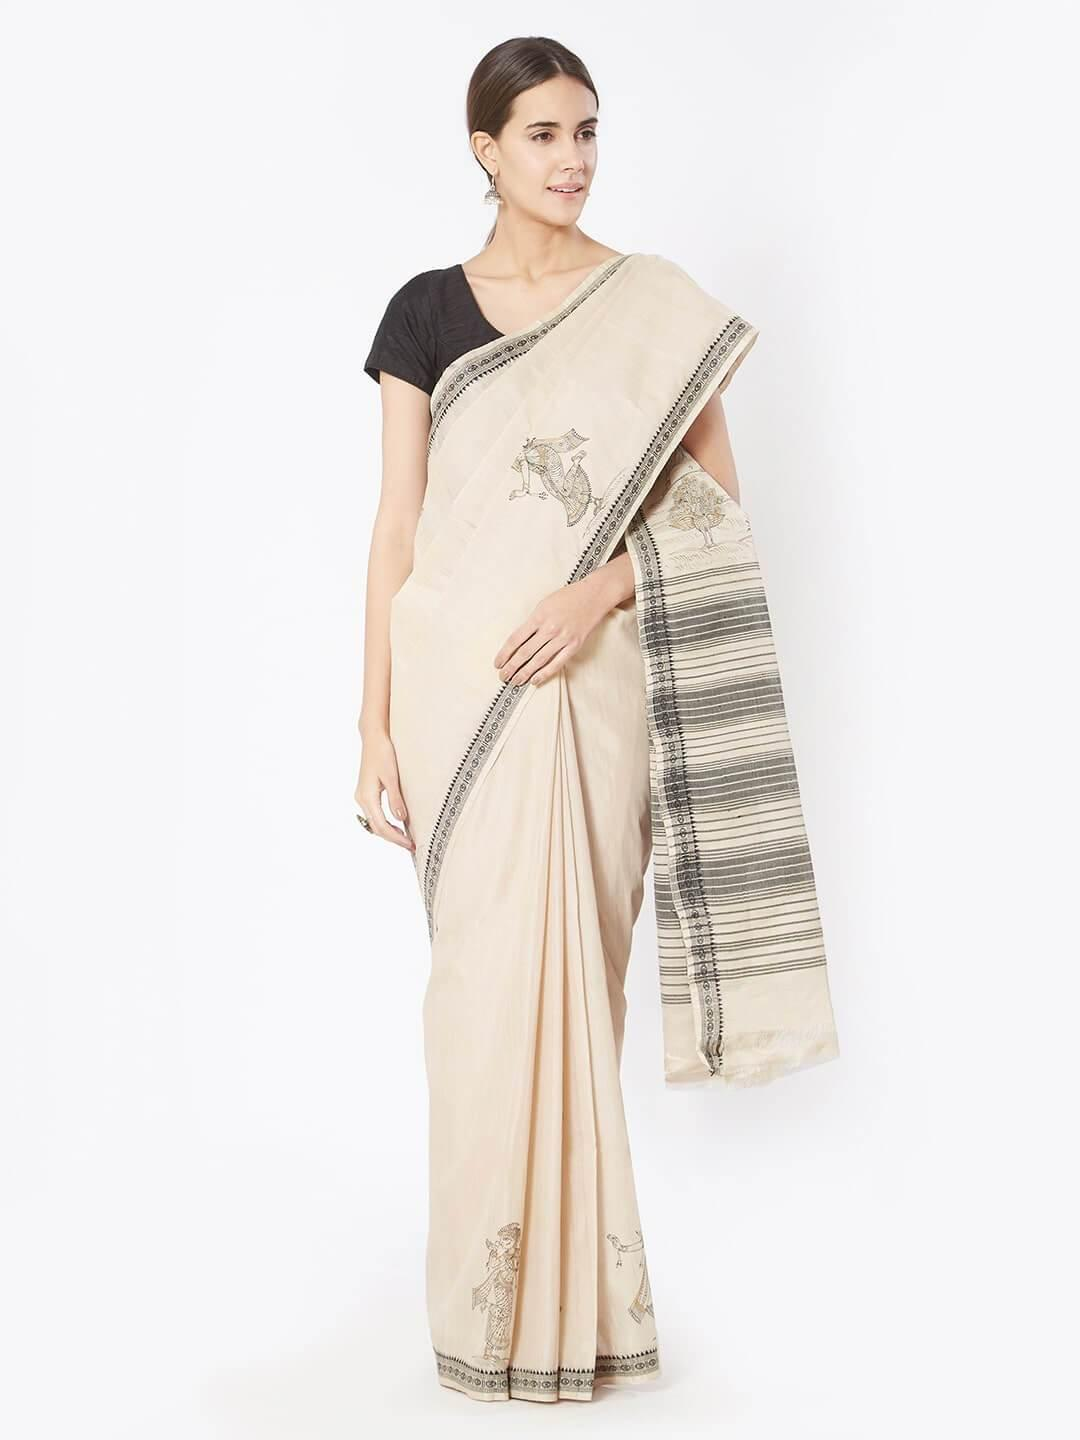 CraftsCollection.in - Beige Bapta Cotton Saree with Pattchitra motifs